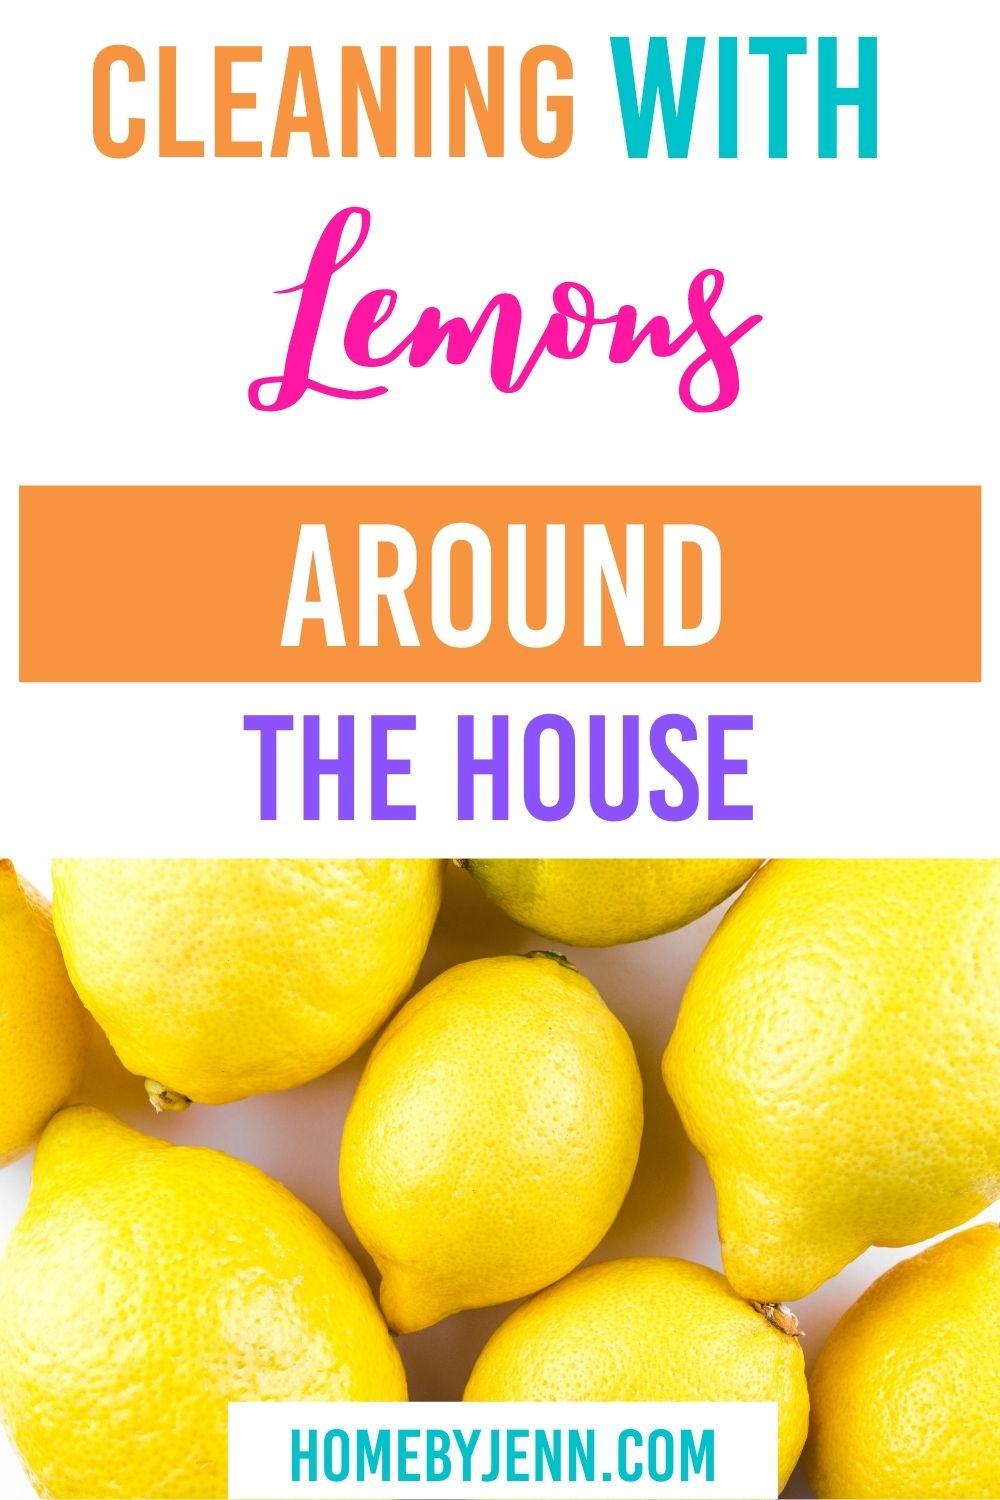 Cleaning with lemons will leave any area smelling fresh and clean. There are so many ways you can clean with lemons. I'm going to show you what to clean with lemons around the house. Lemons might just become your favorite cleaning tool! via @homebyjenn